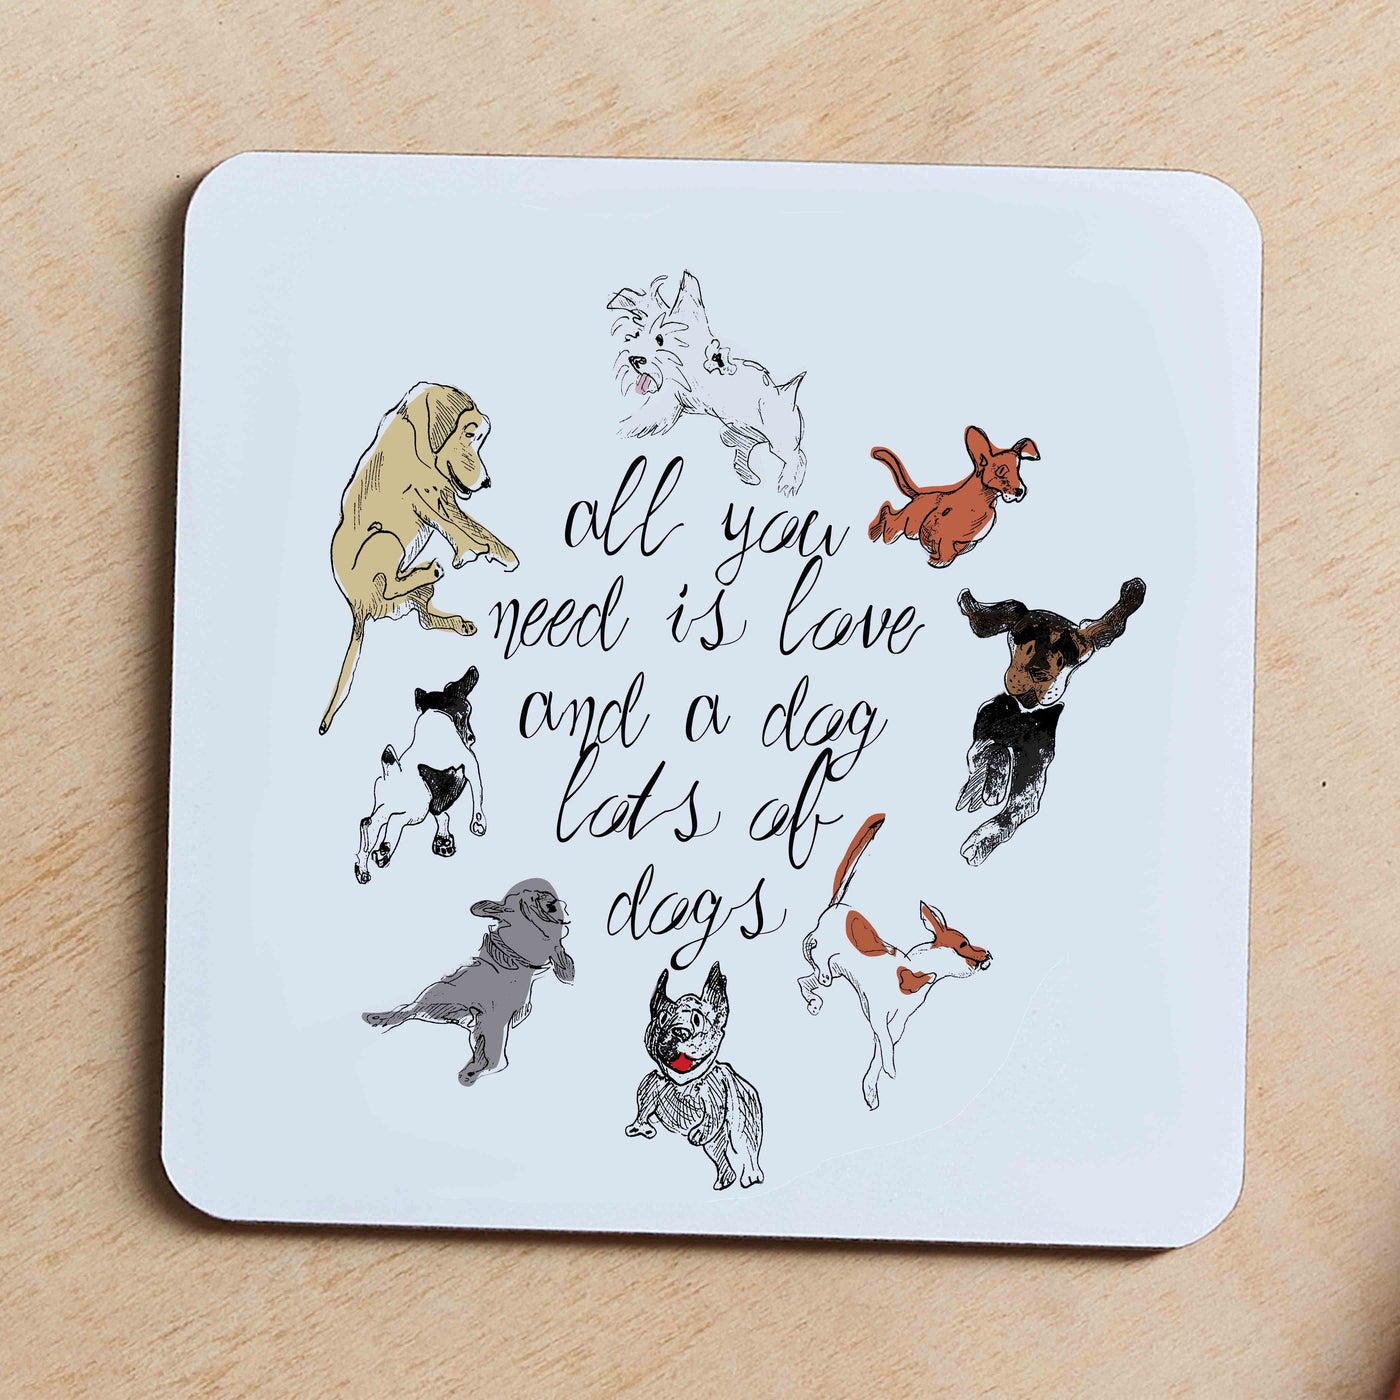 All you need is Love & Dogs, Lots of Dogs, Jumbo Coaster - Jo Scott